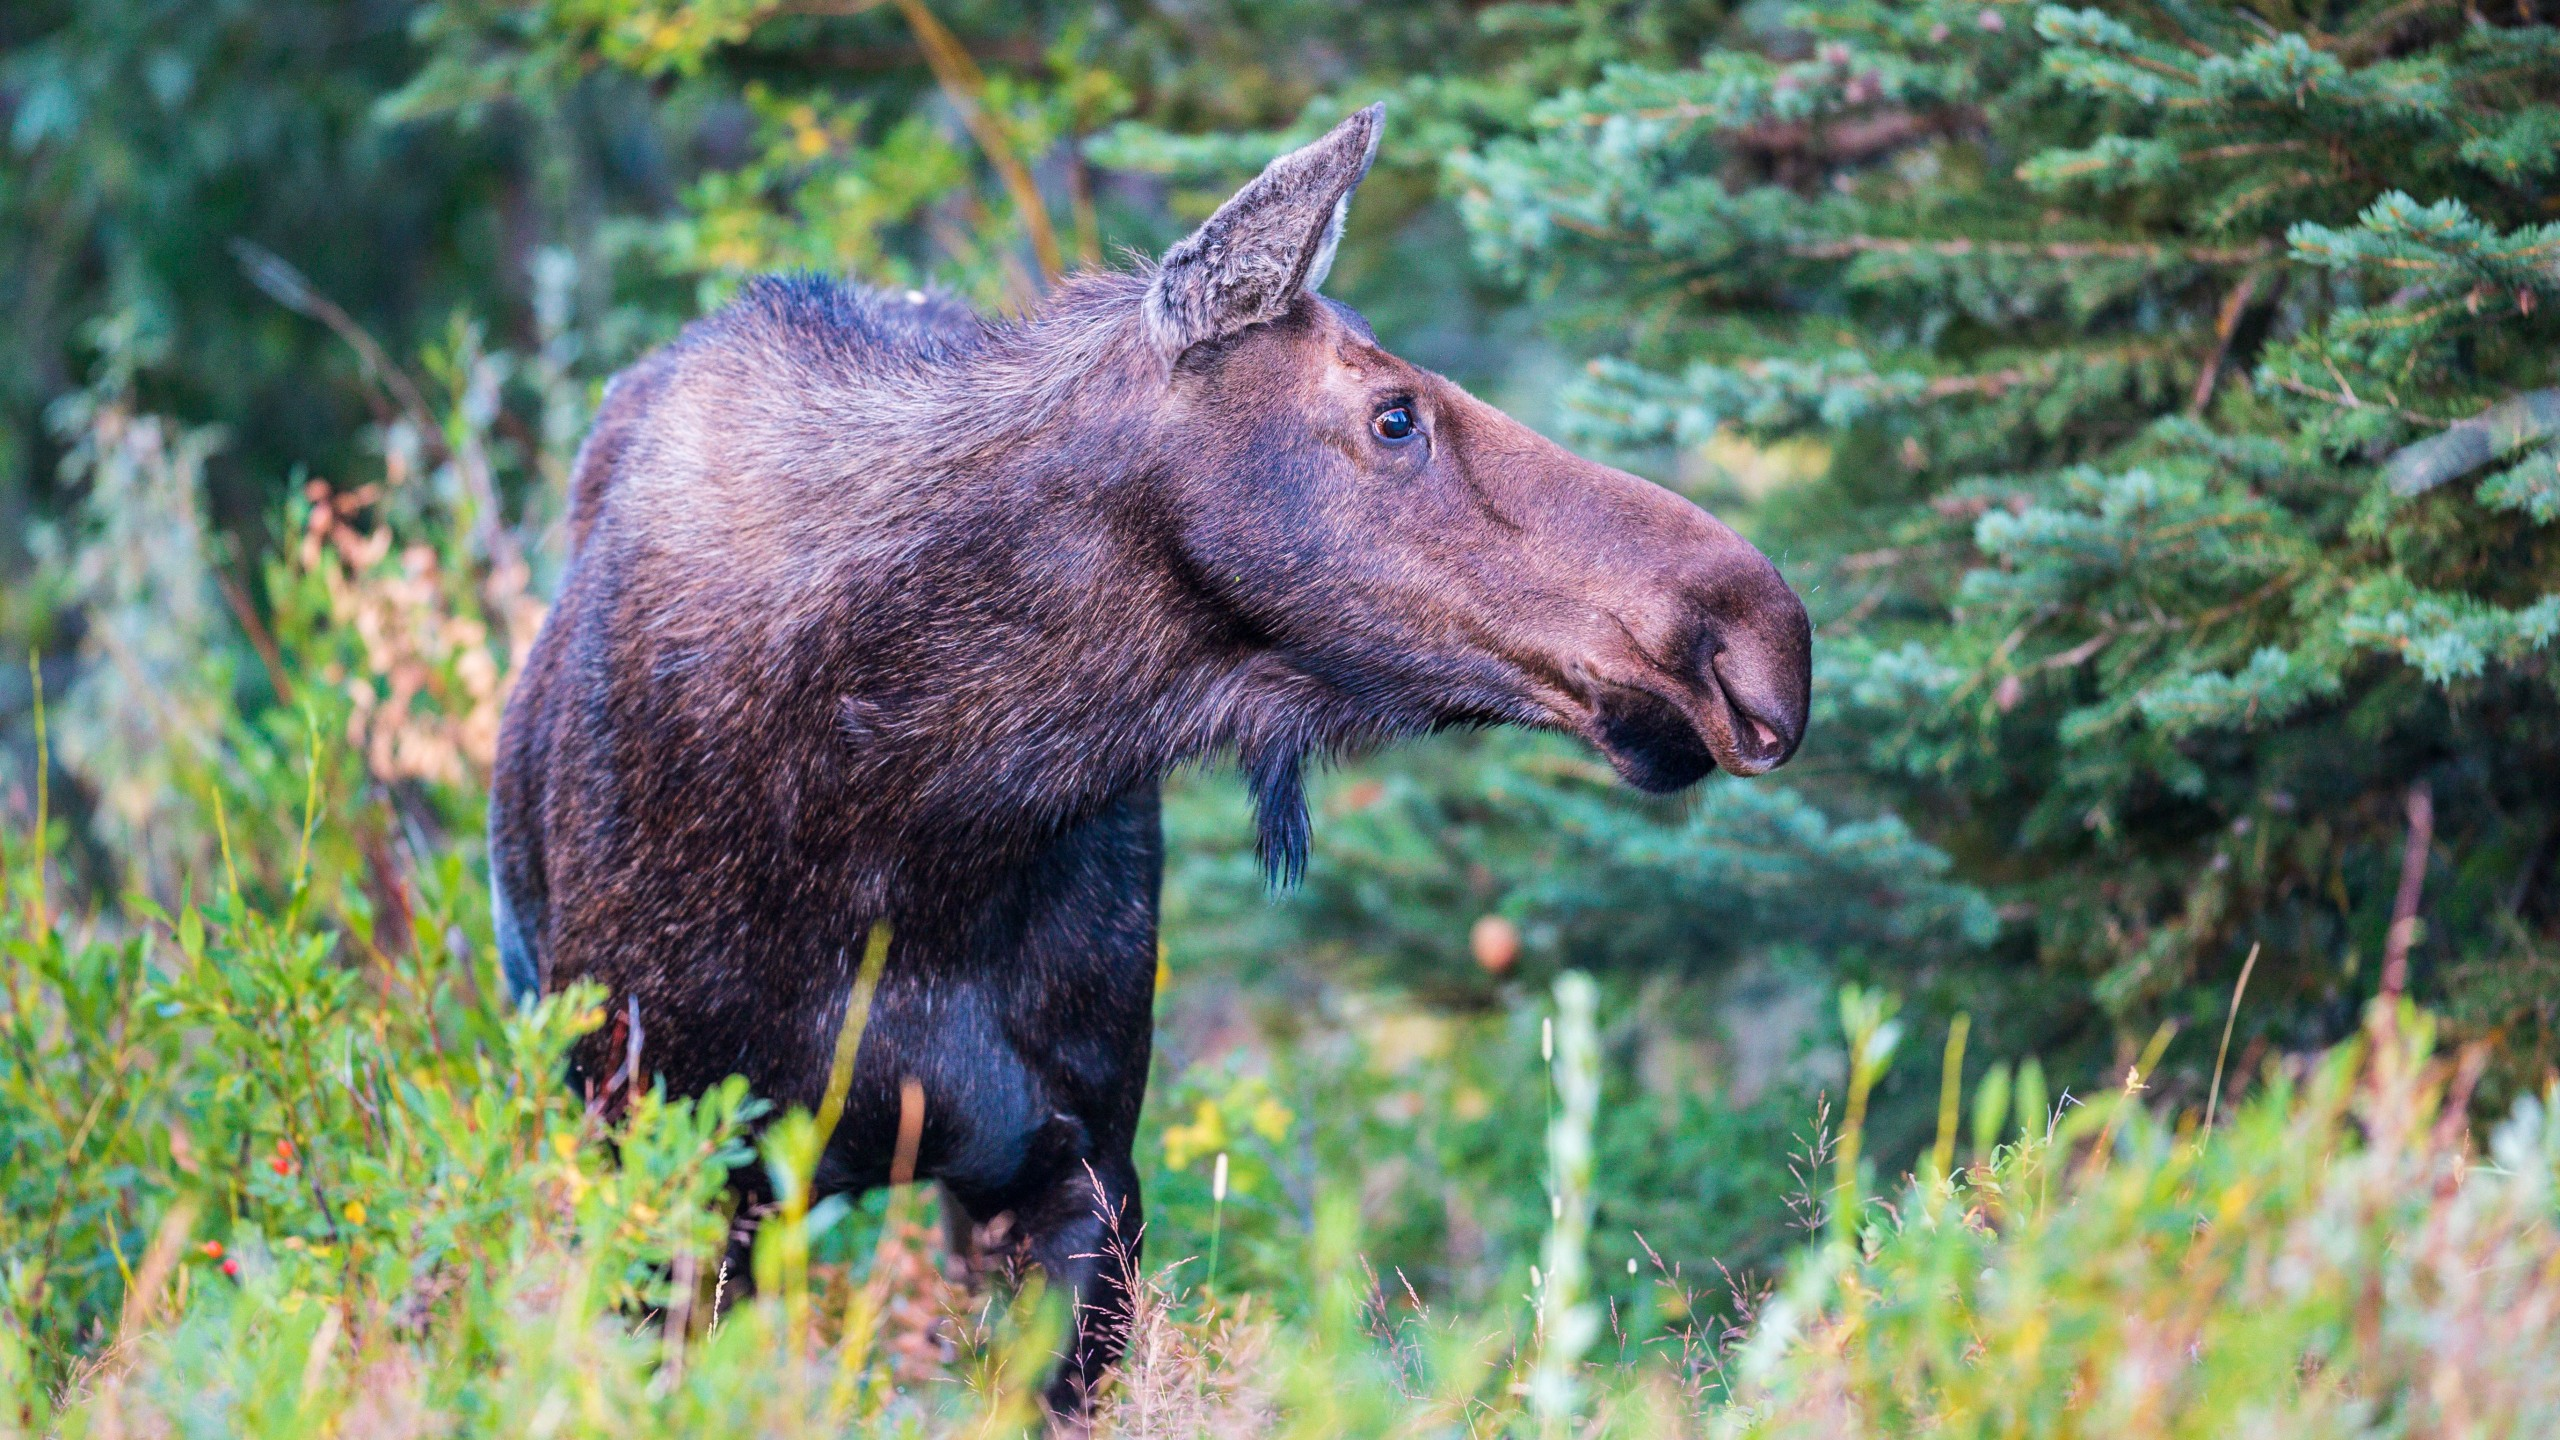 A cow moose stands in the willows